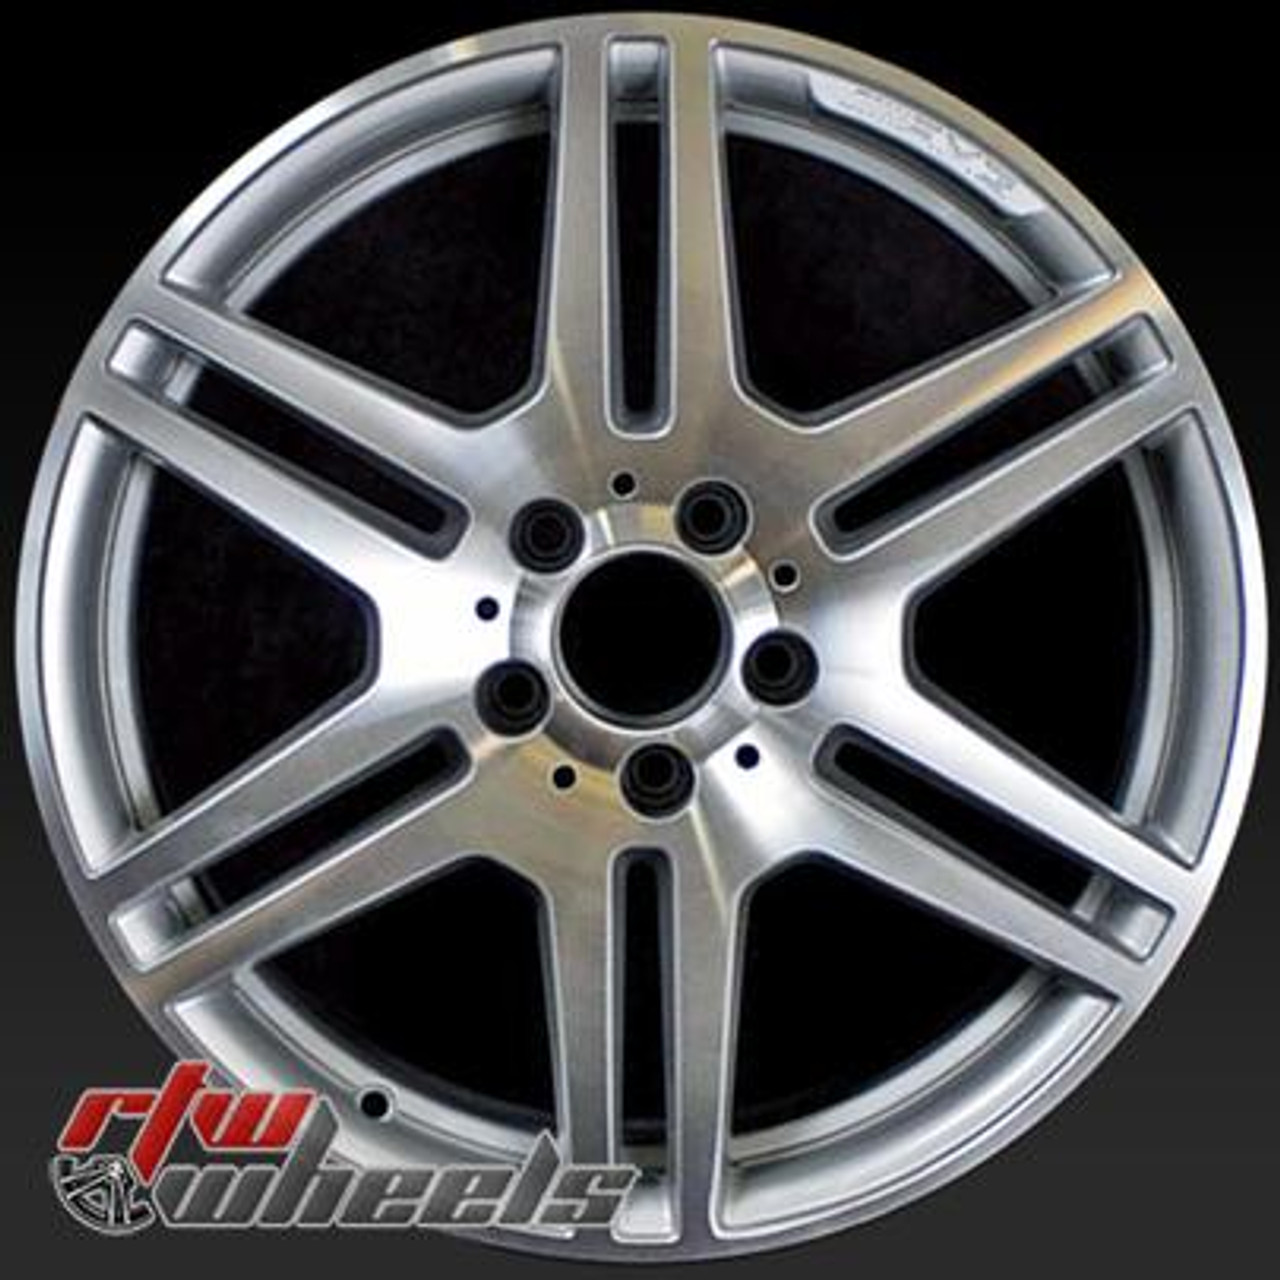 Mercedes Benz Rims >> Mercedes Benz Wheels For Sale 2008 2011 17 Amg Machined Rims 65529